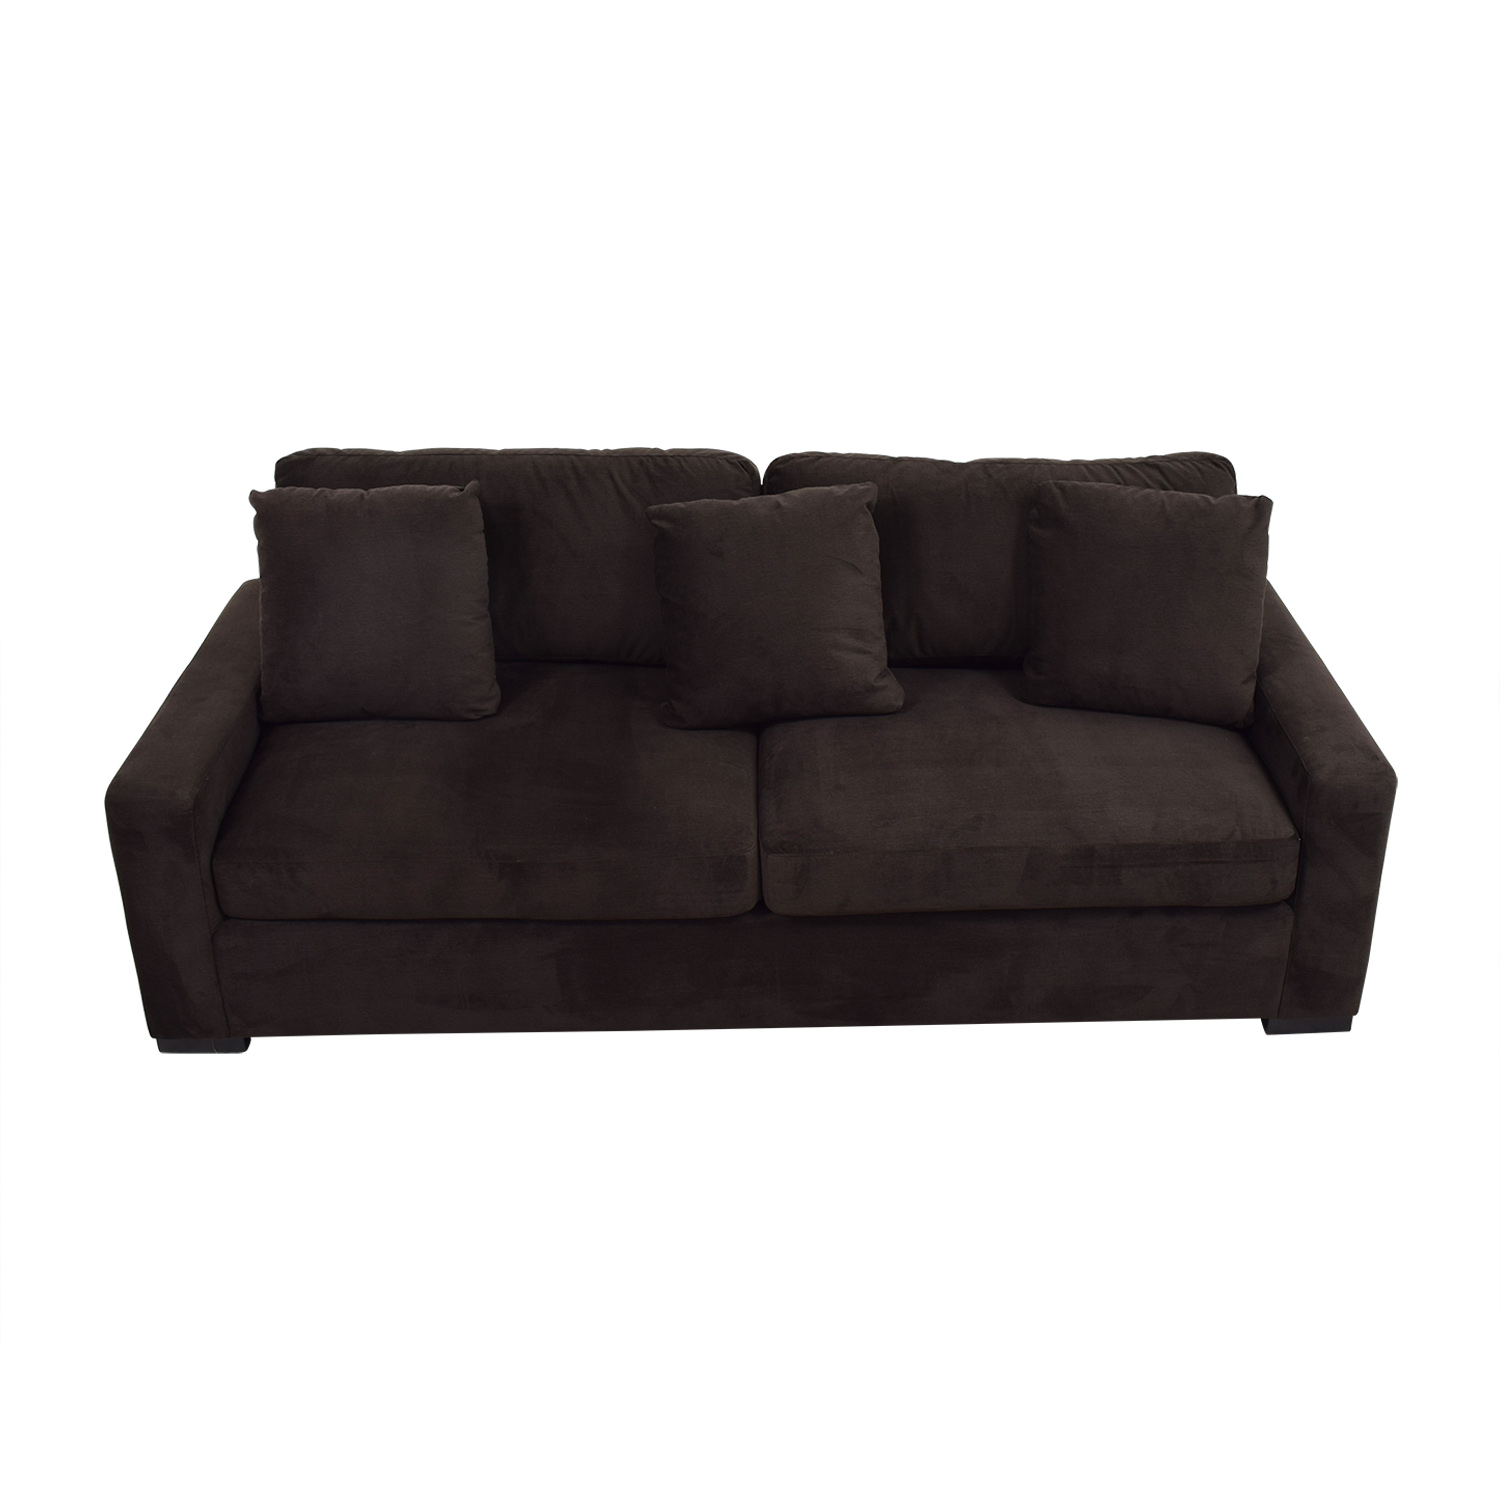 Bernhardt Bernhardt Jefferson Brown Sofa coupon